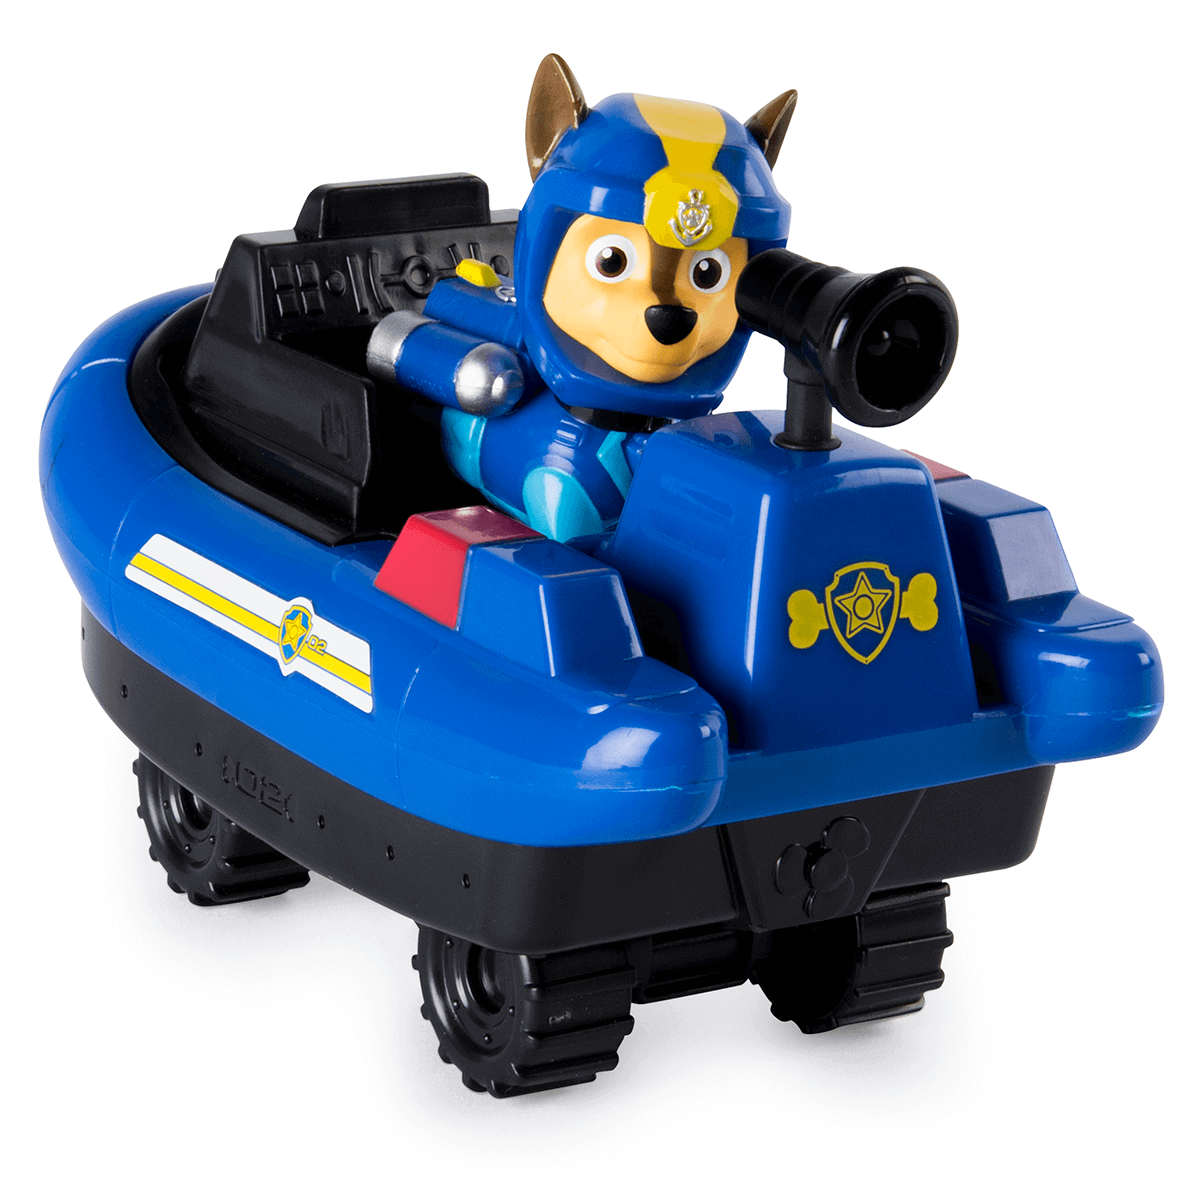 Paw Patrol Sea Vehicle With Chase The Entertainer